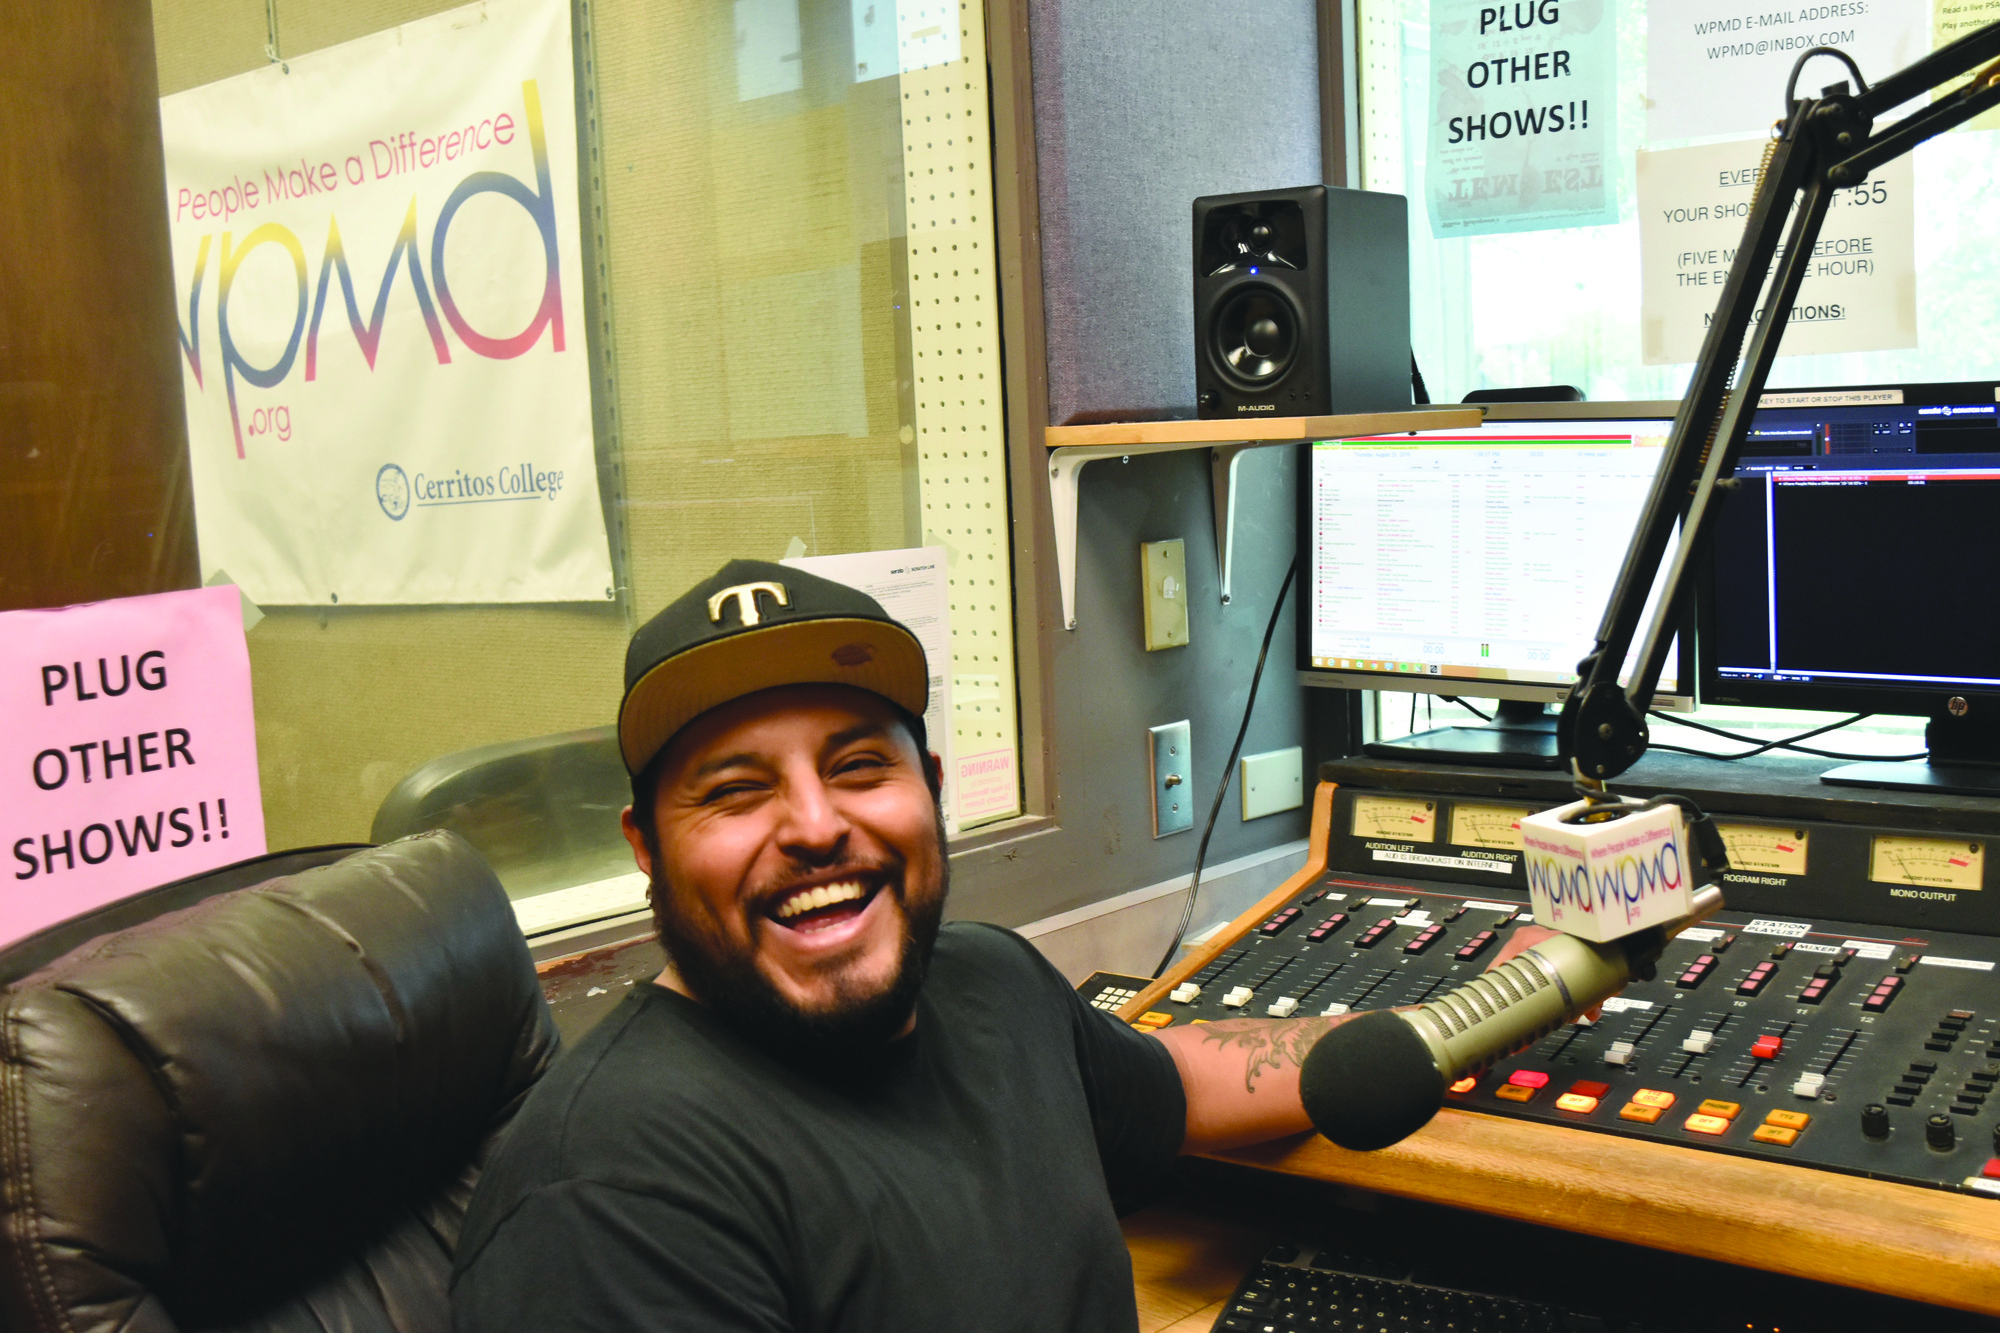 WPMD gives platform to student DJ